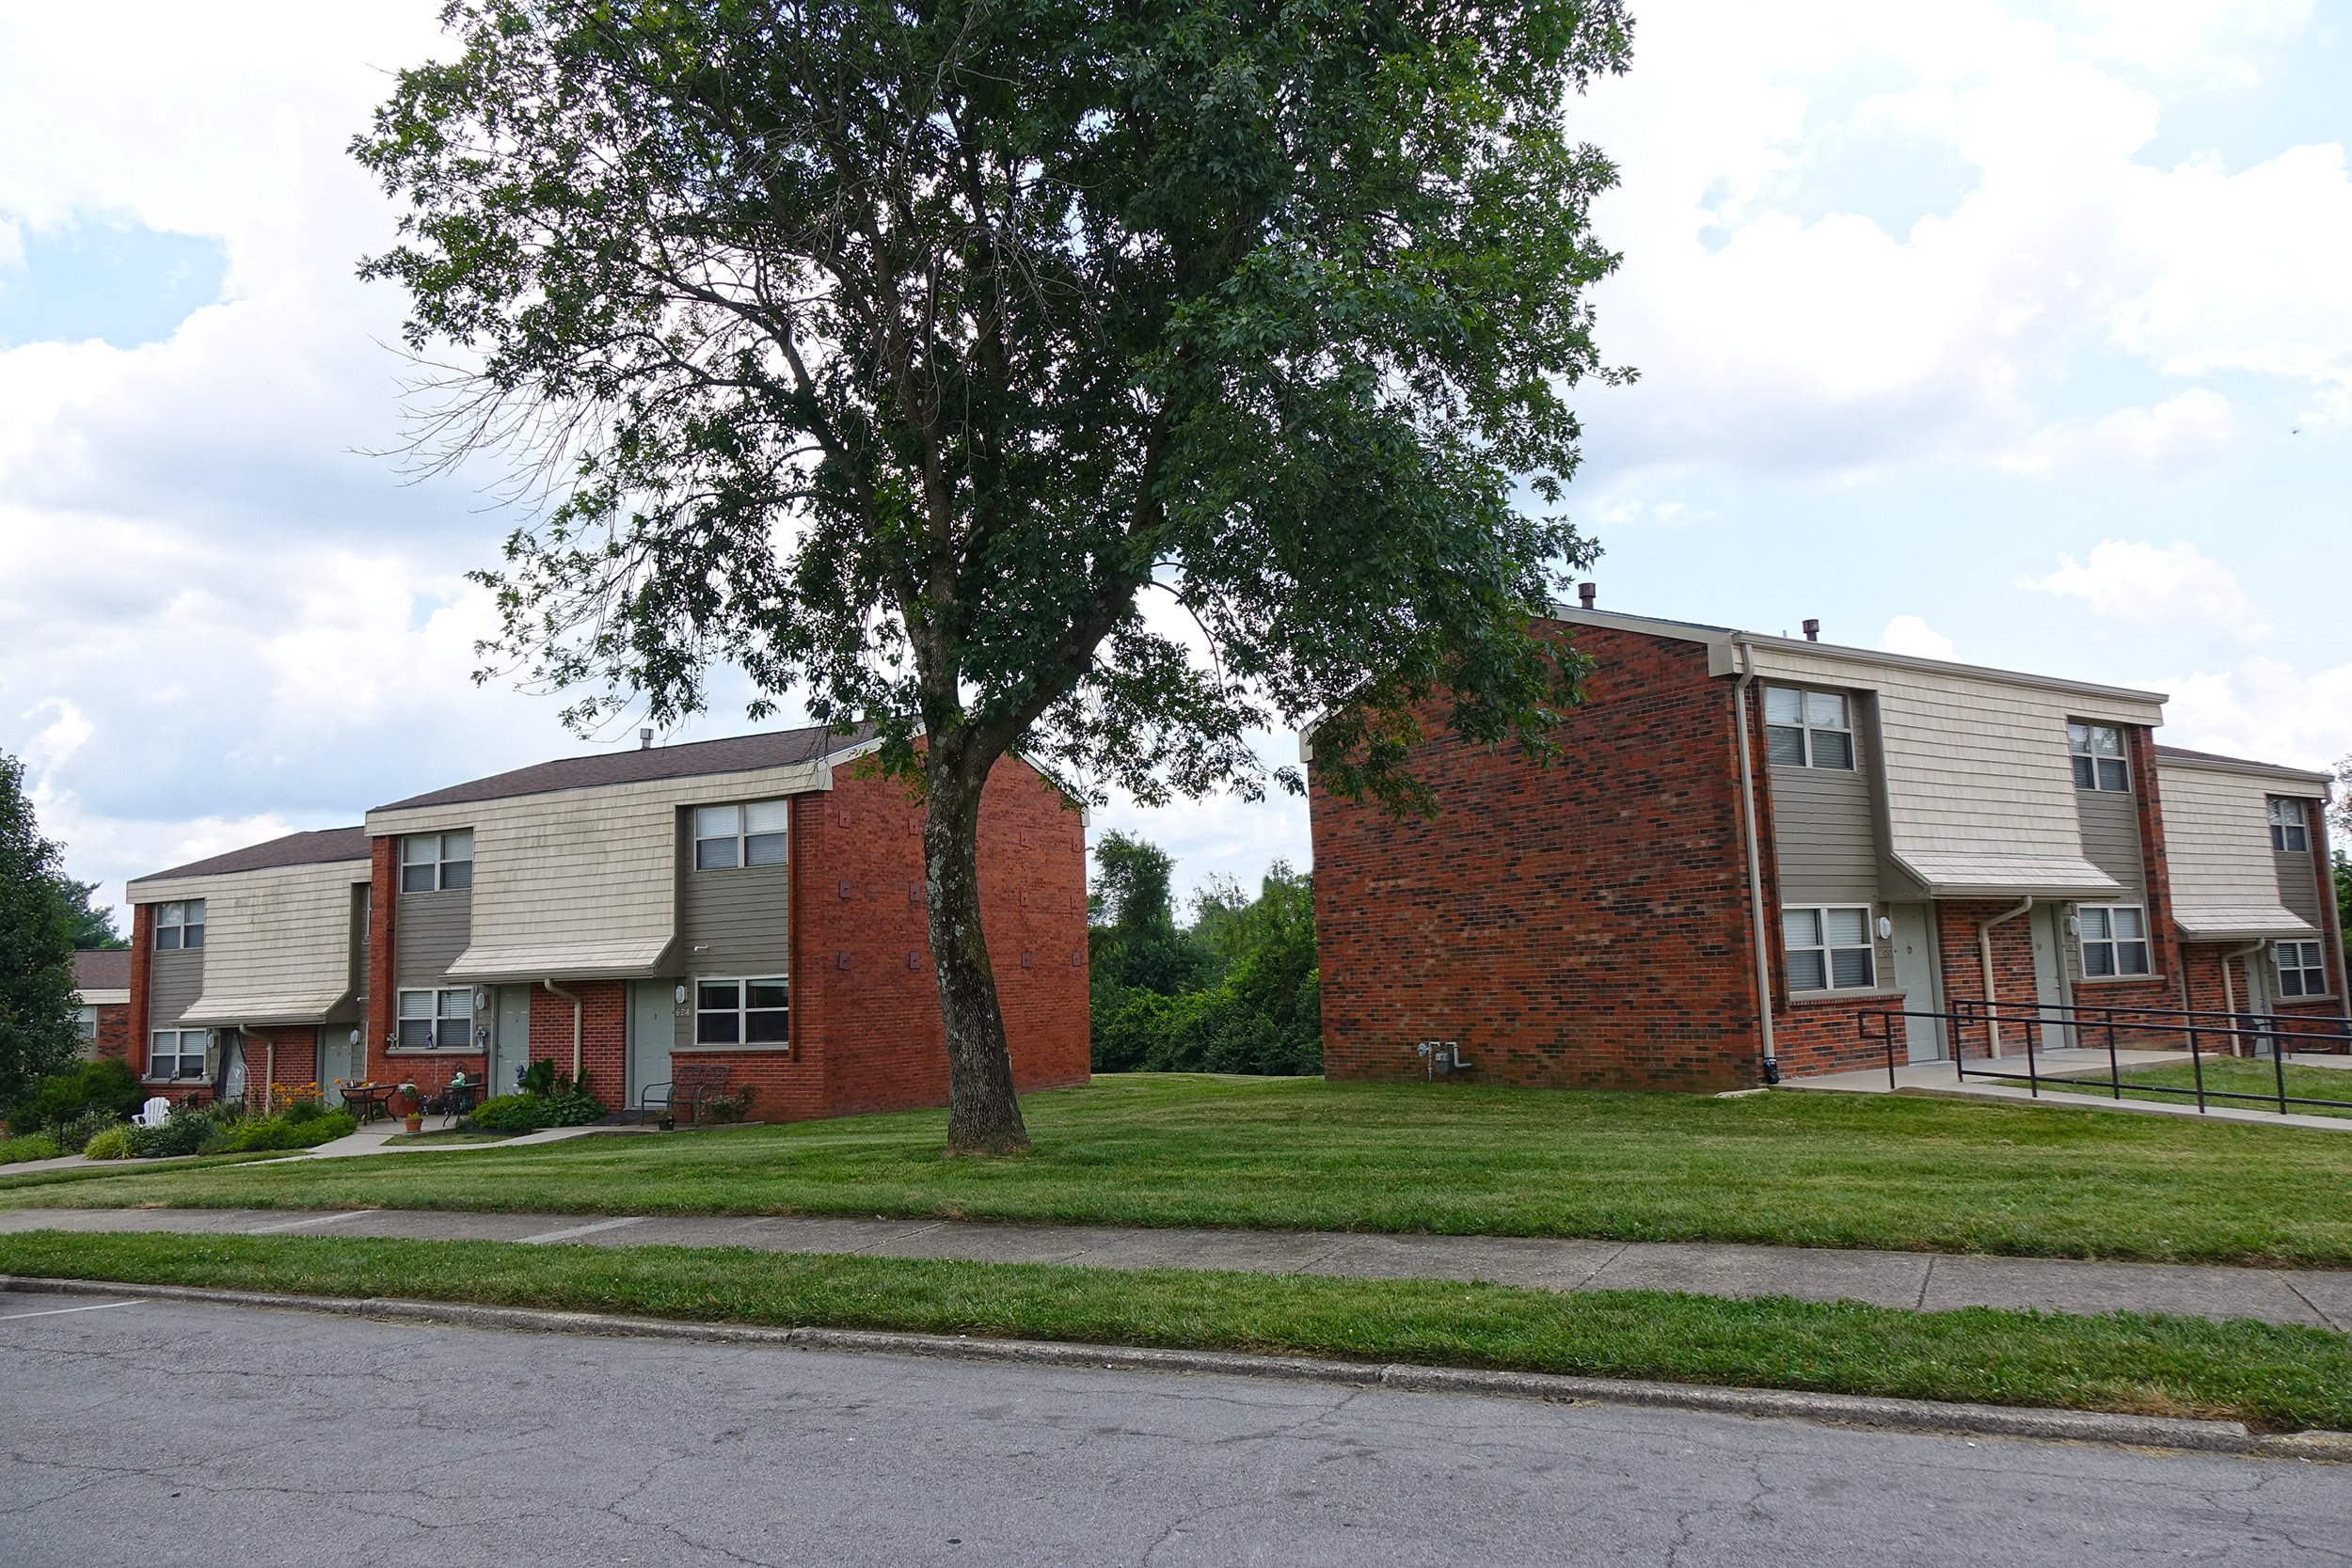 Belmont Court Apartments - Low Income, 633 Belmont St, Harrodsburg